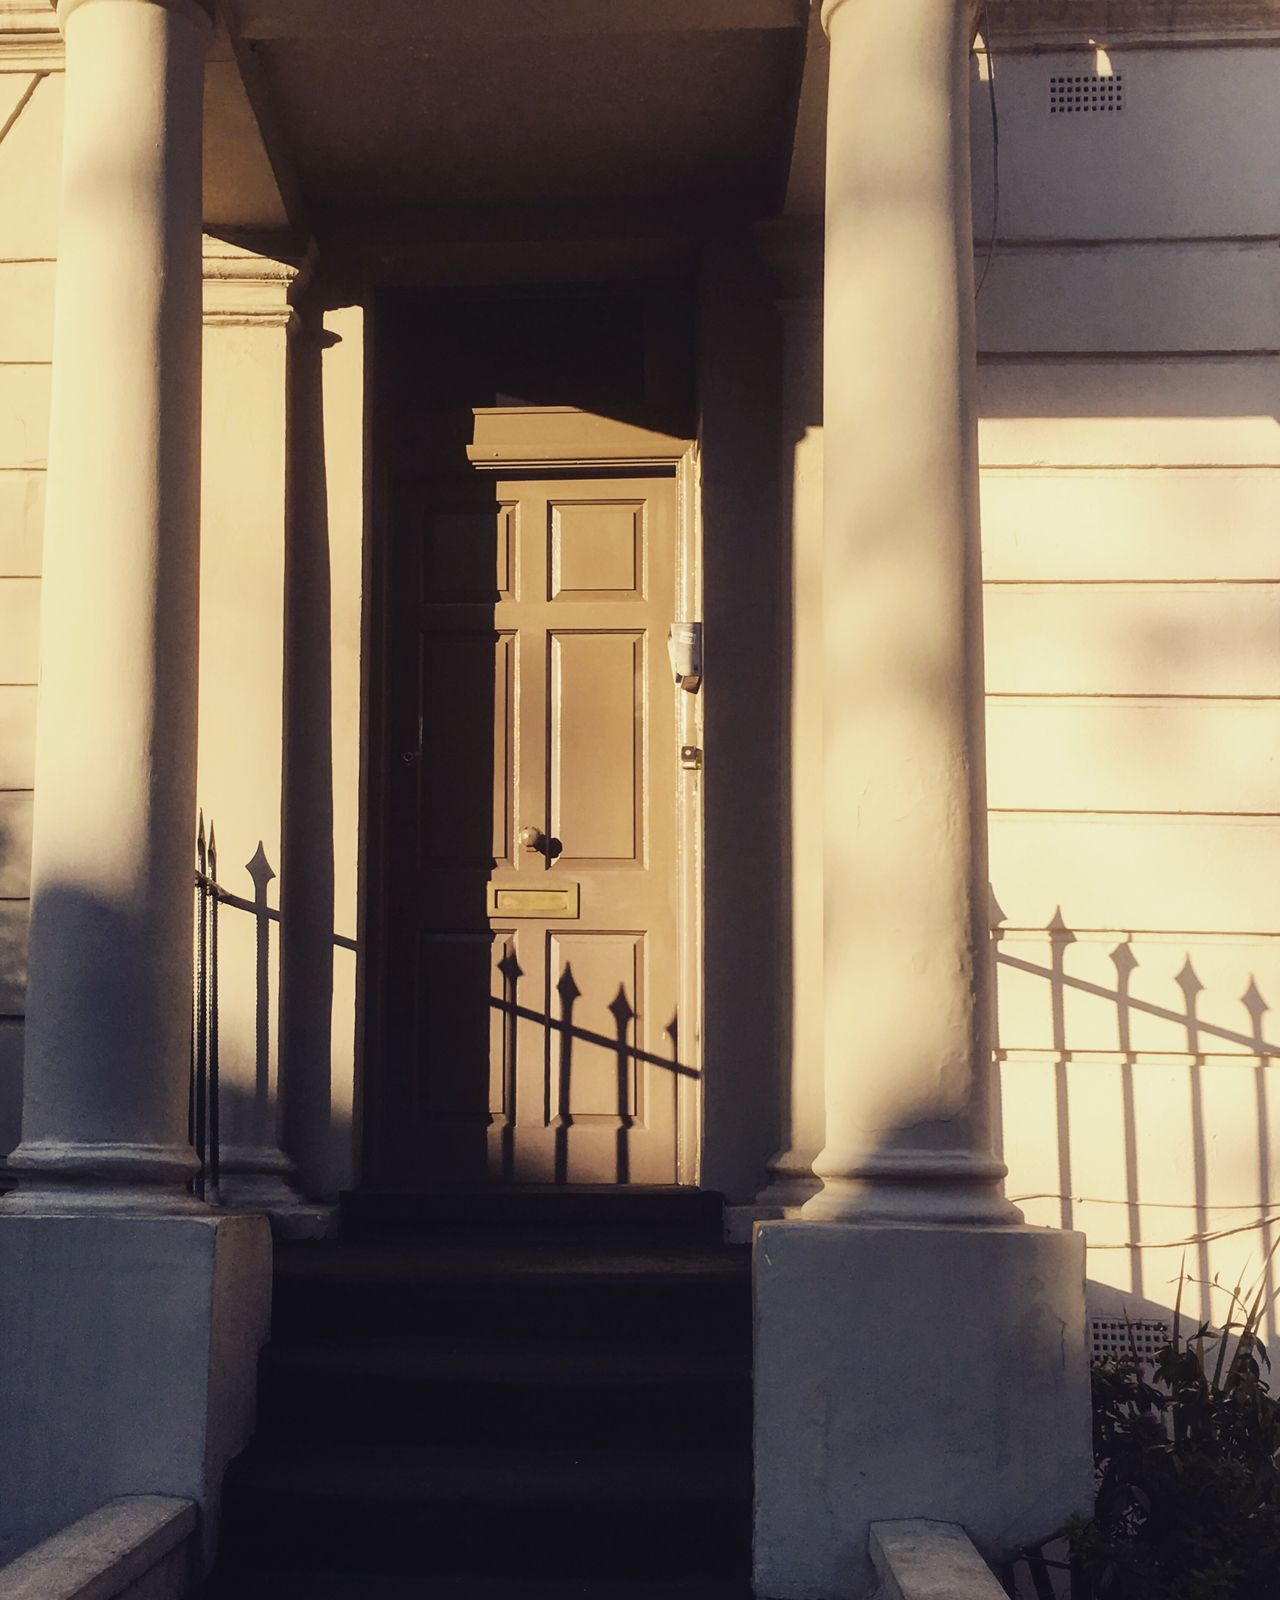 The City Light Door Built Structure No People Architecture Indoors  Day London Notting Hill